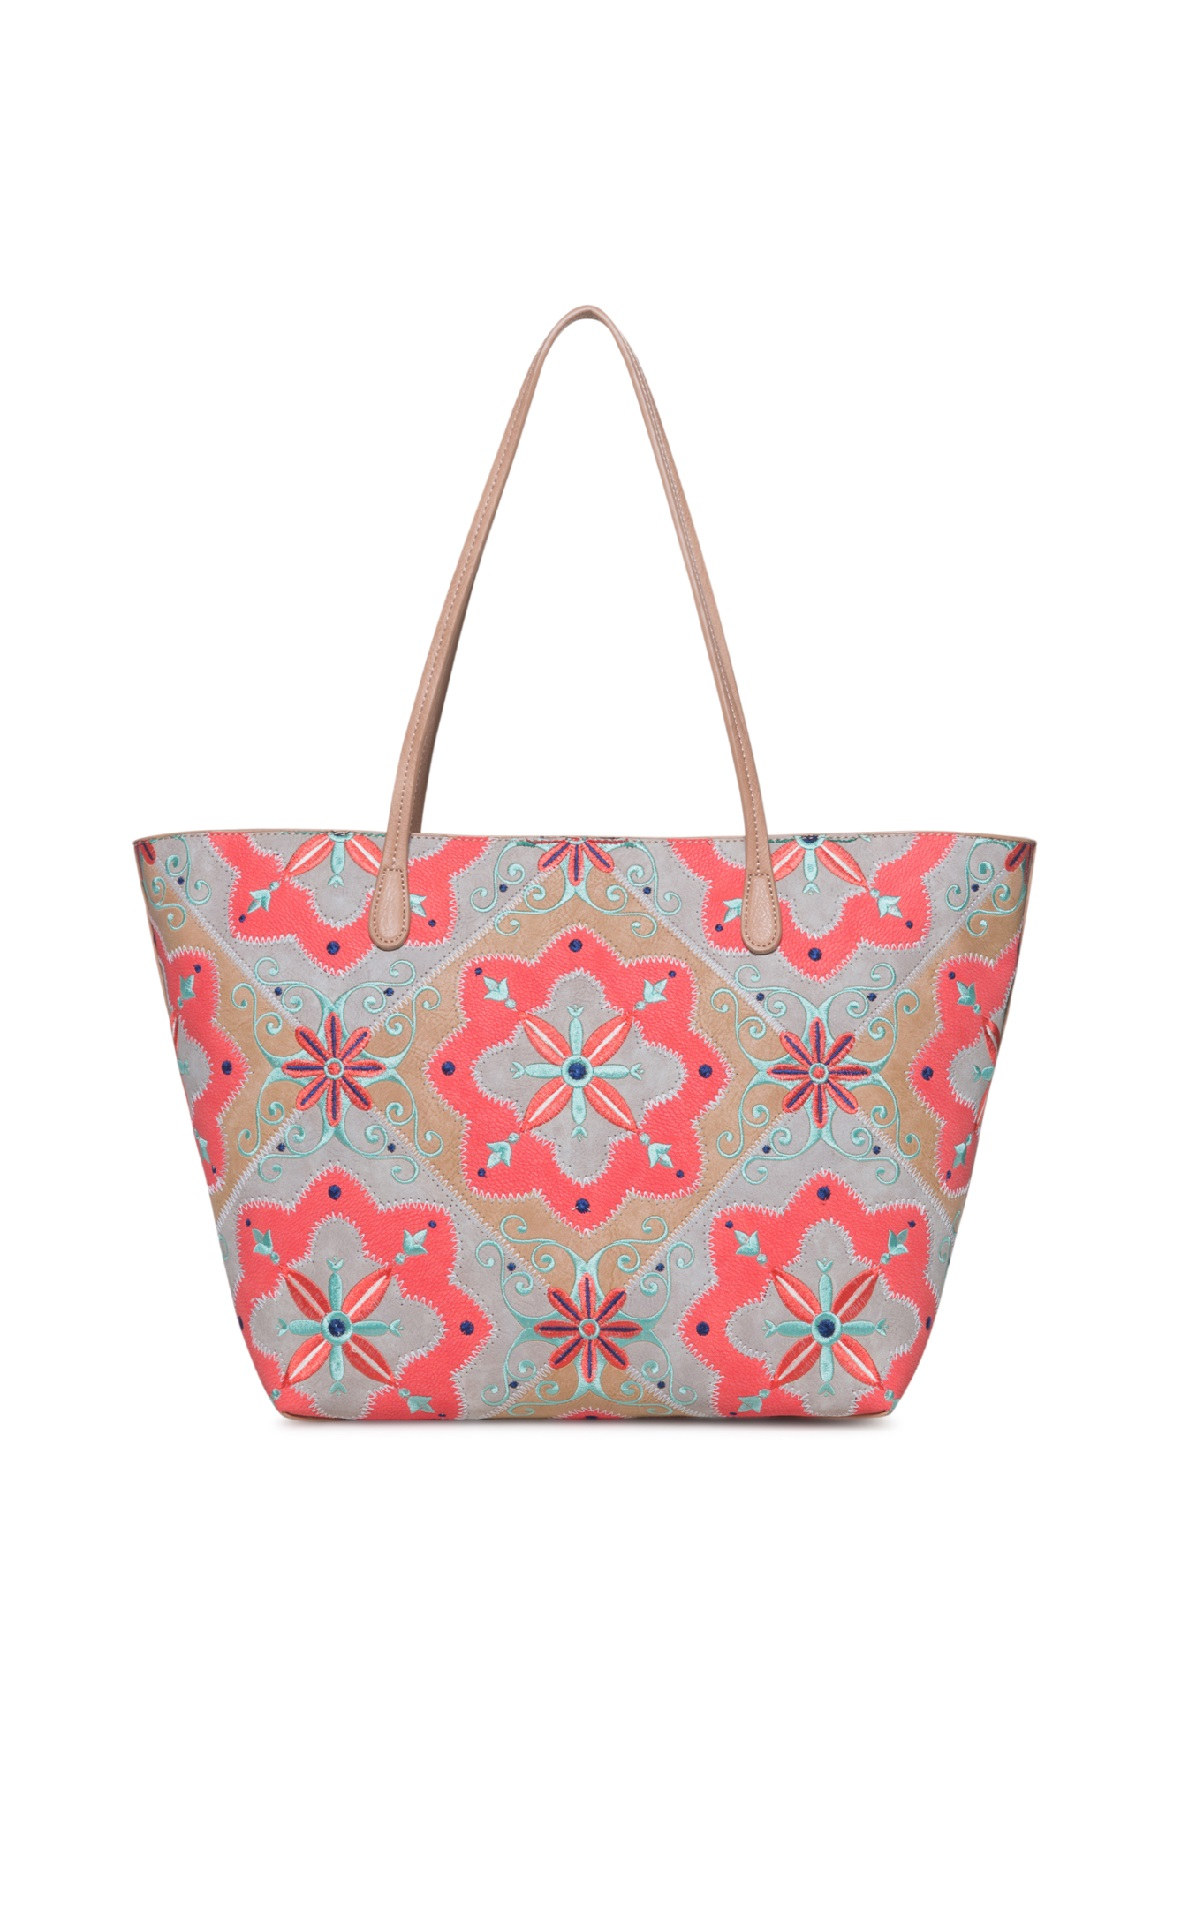 Grey and orange tote bag Desigual